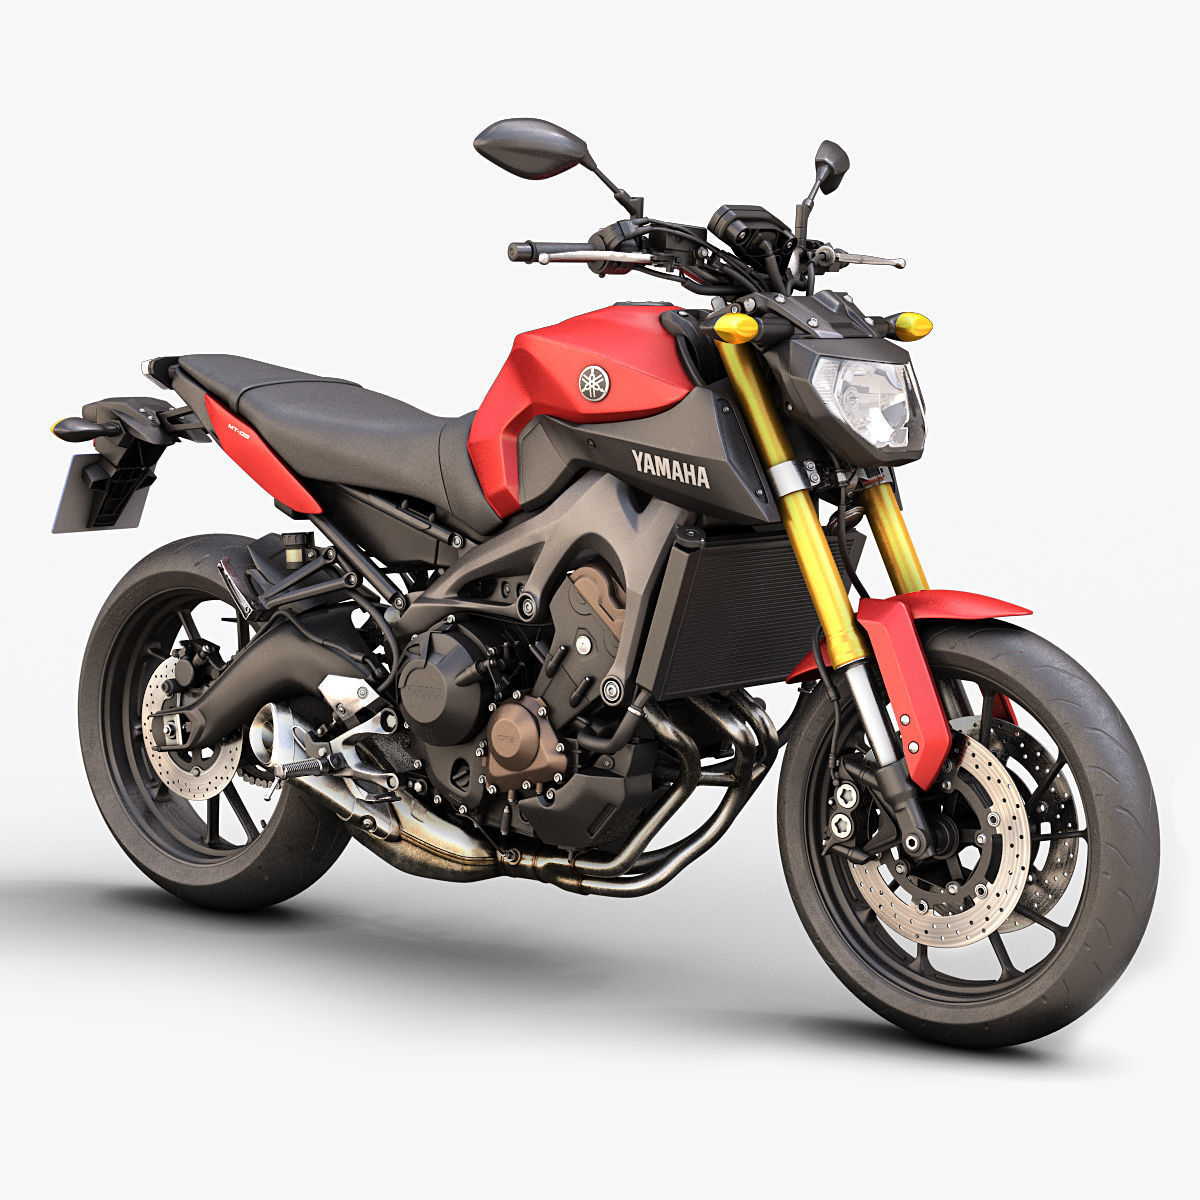 2013 Yamaha MT-09 - Picture 510635 | motorcycle review